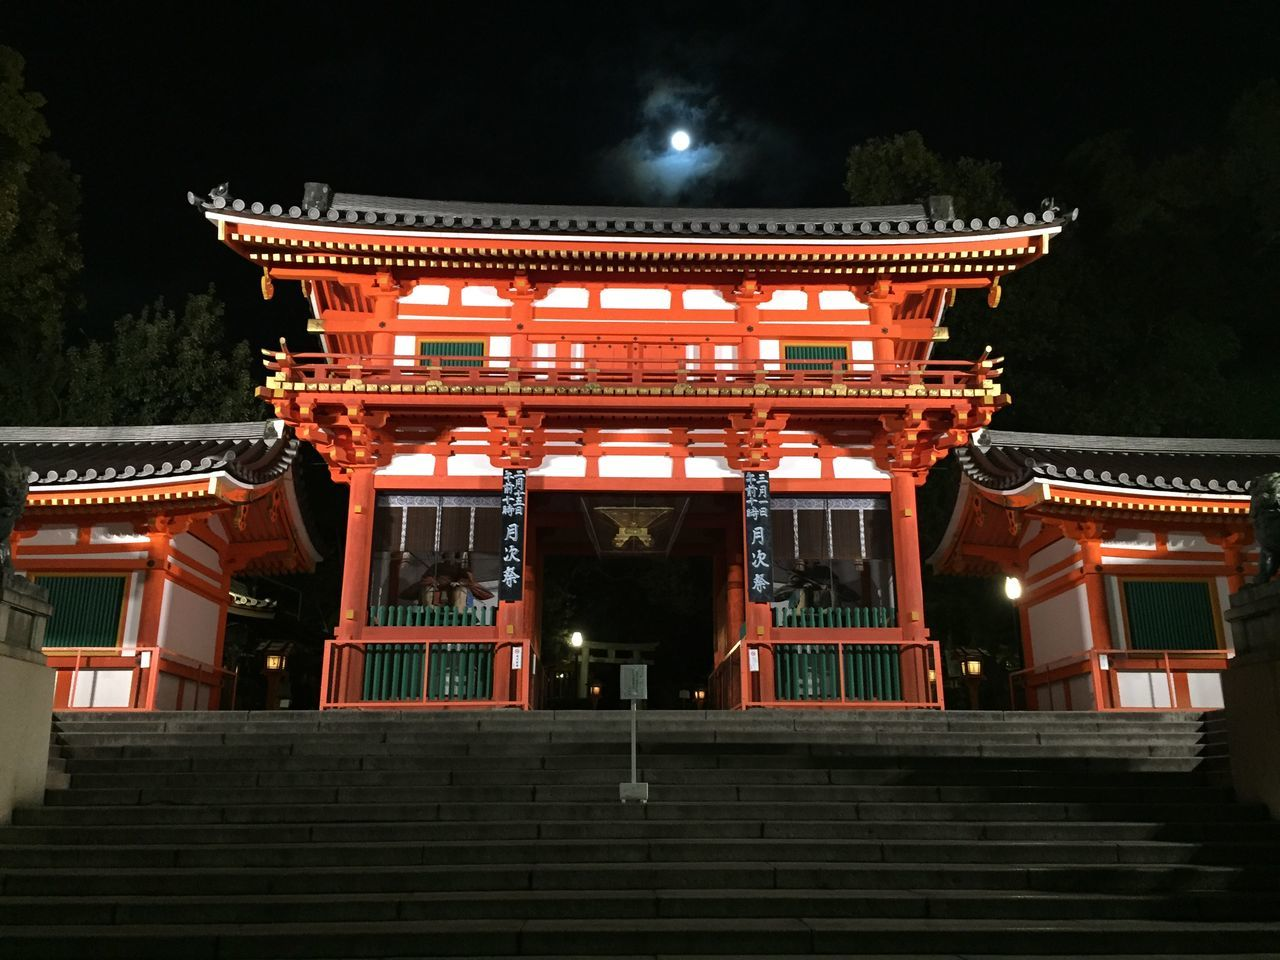 Architecture Building Exterior Built Structure Fullmoon Illuminated Japan Kyoto Low Angle View Night No People Outdoors Shrine Steps Traditional Building Yasaka Shrine